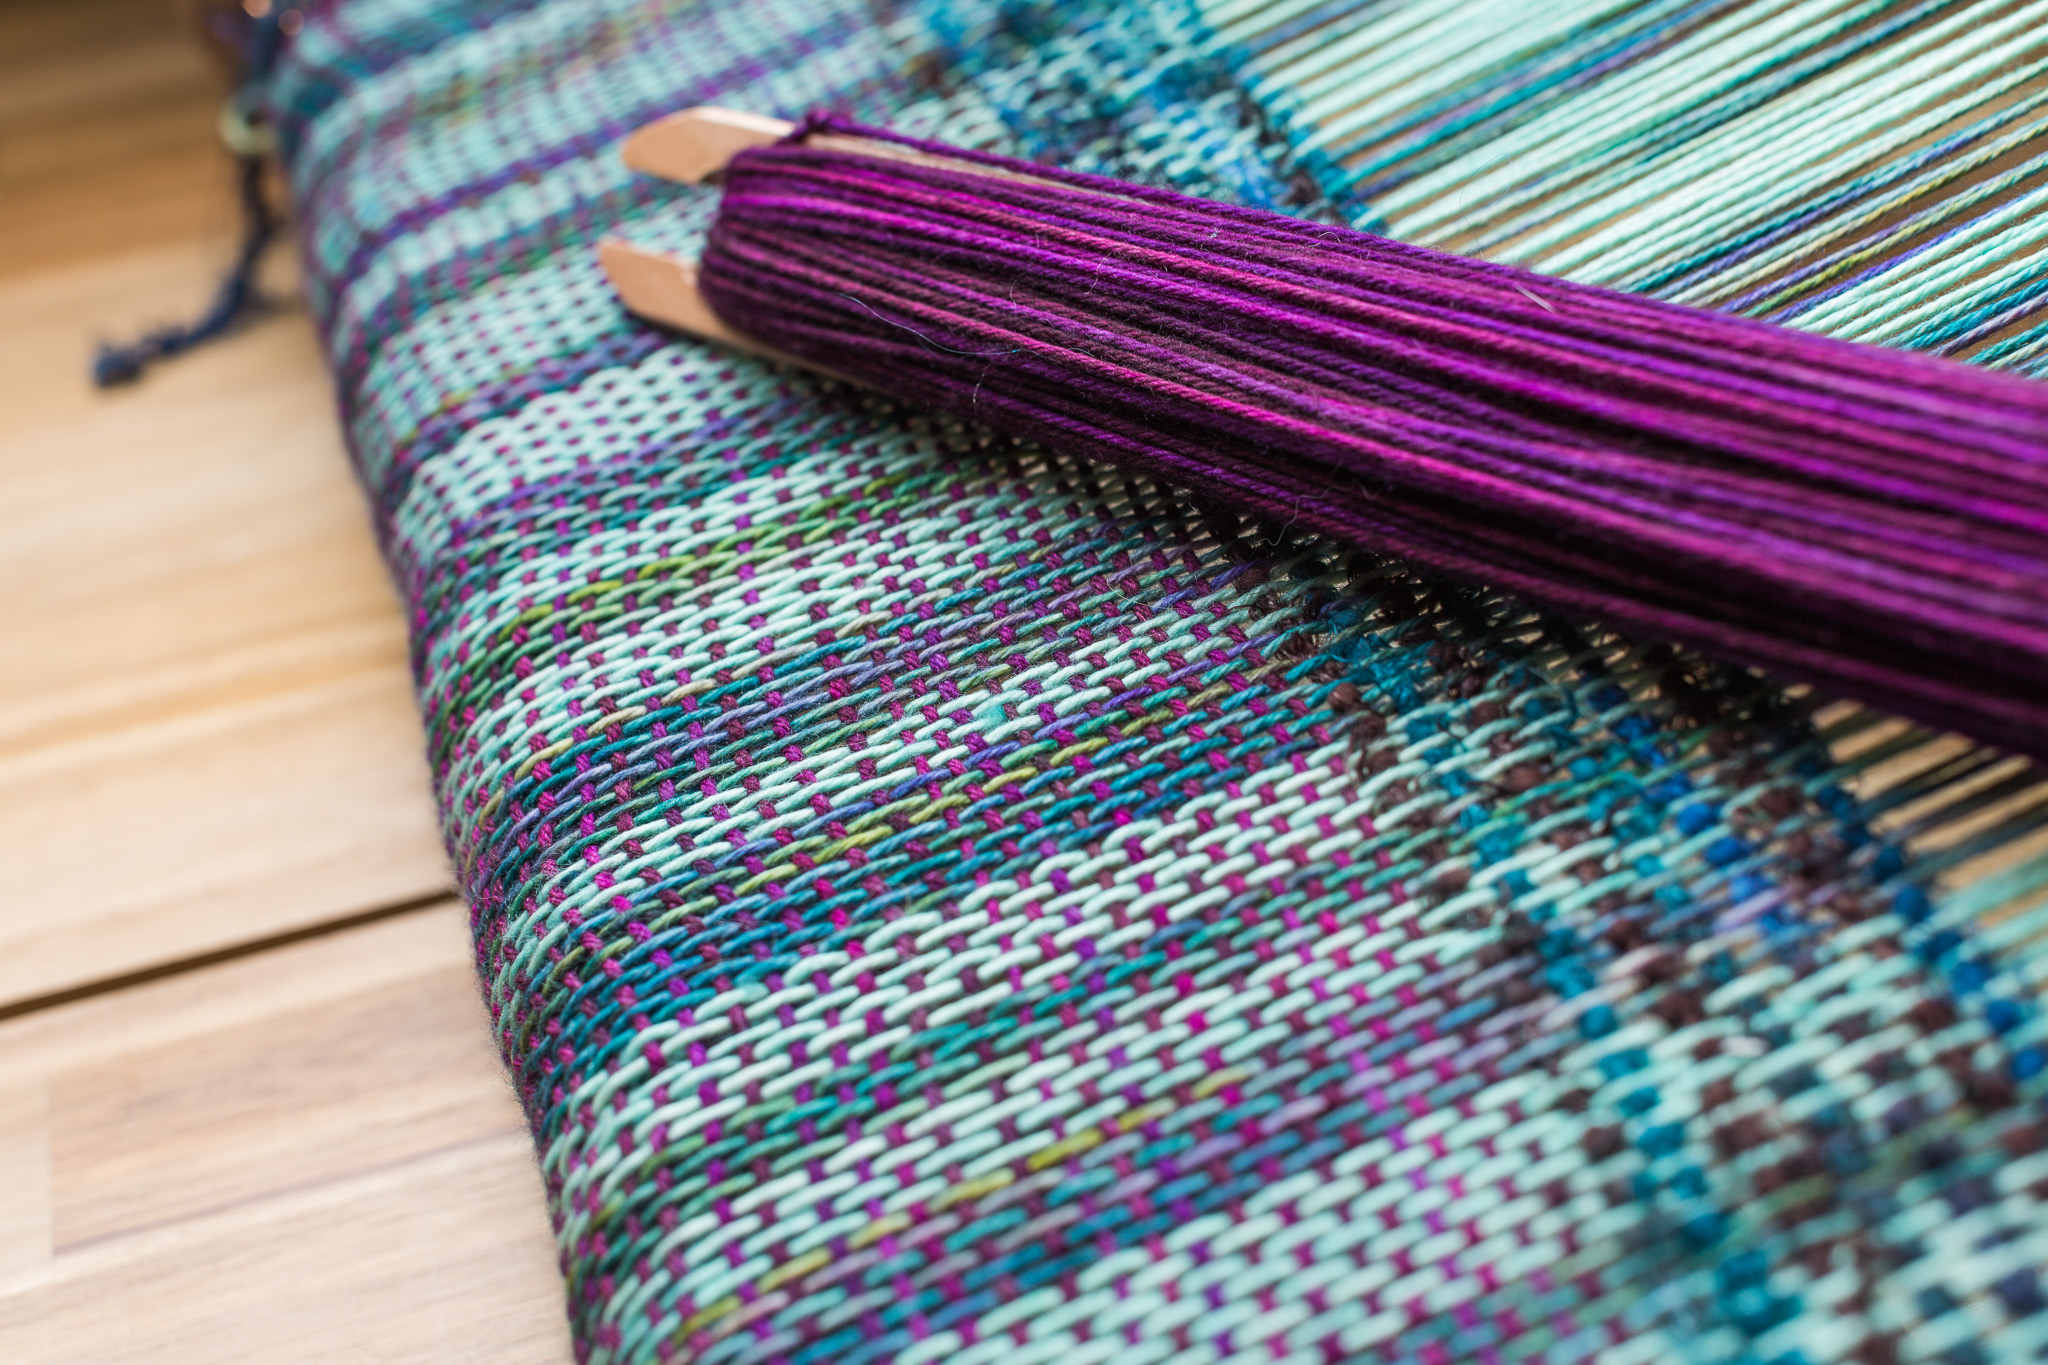 Relax & Knit, Weave, Crochet, or Spin